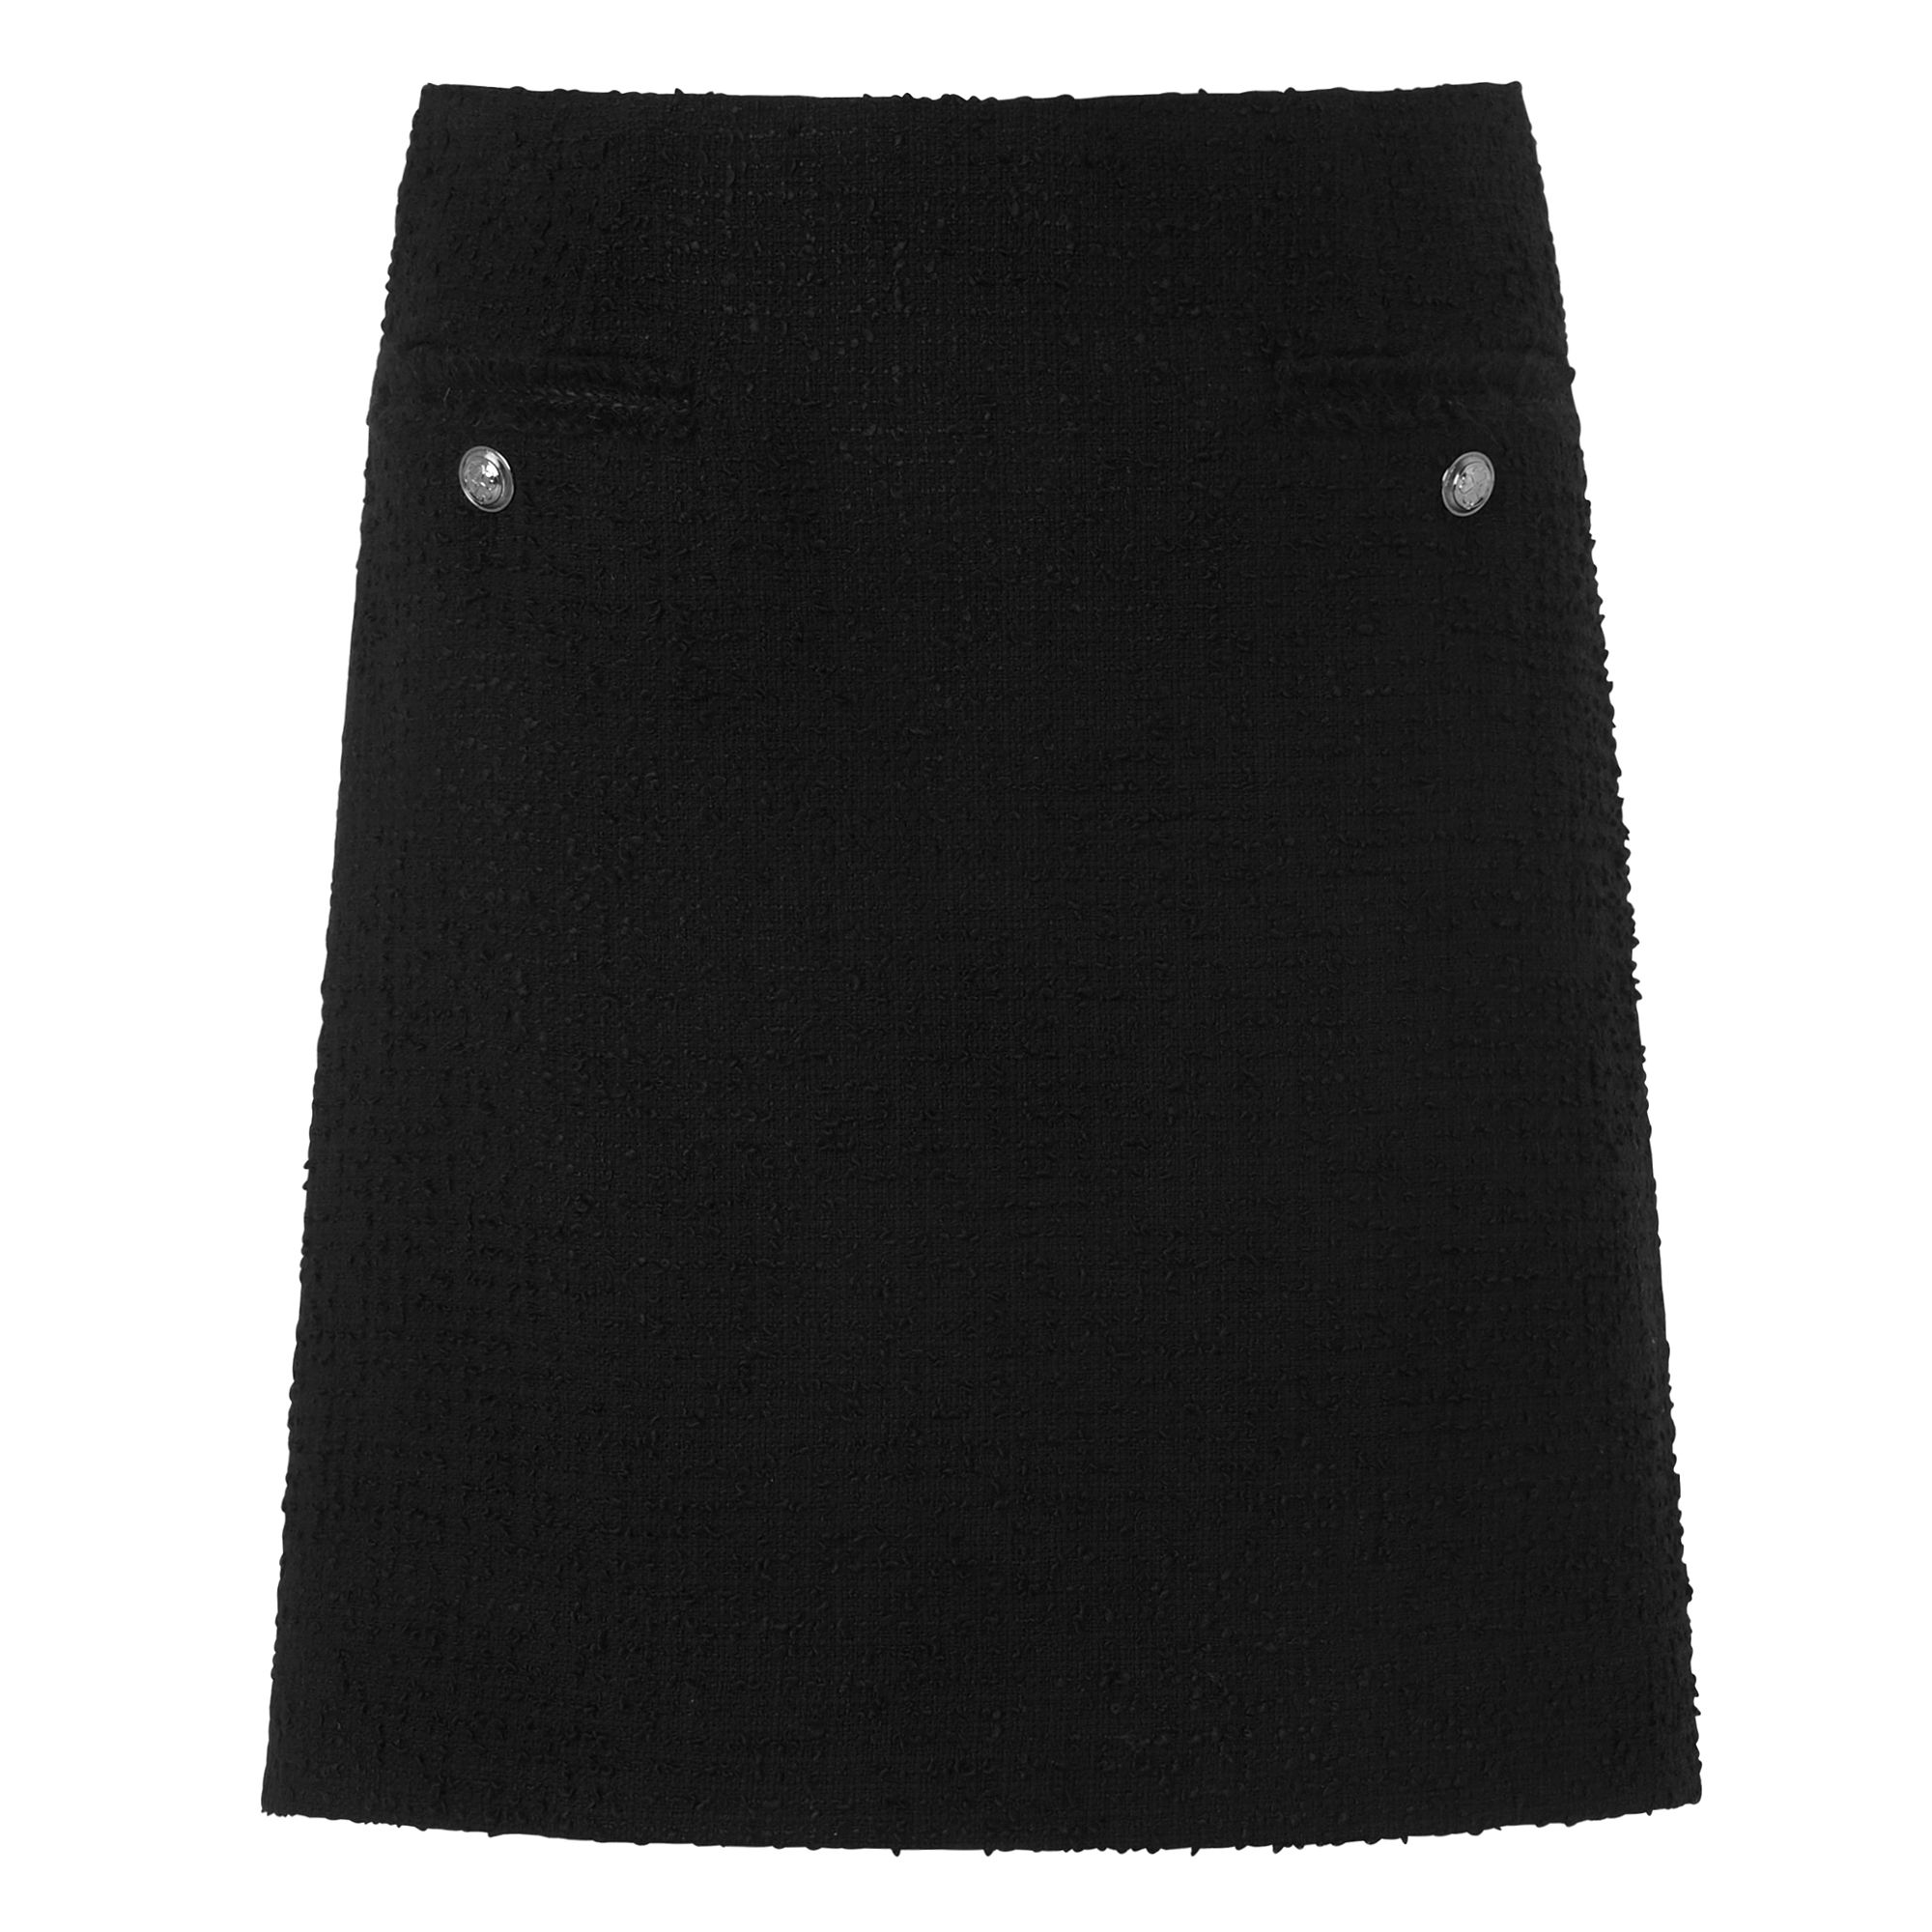 L.K. Bennett Charl Black Tweed Skirt, Black